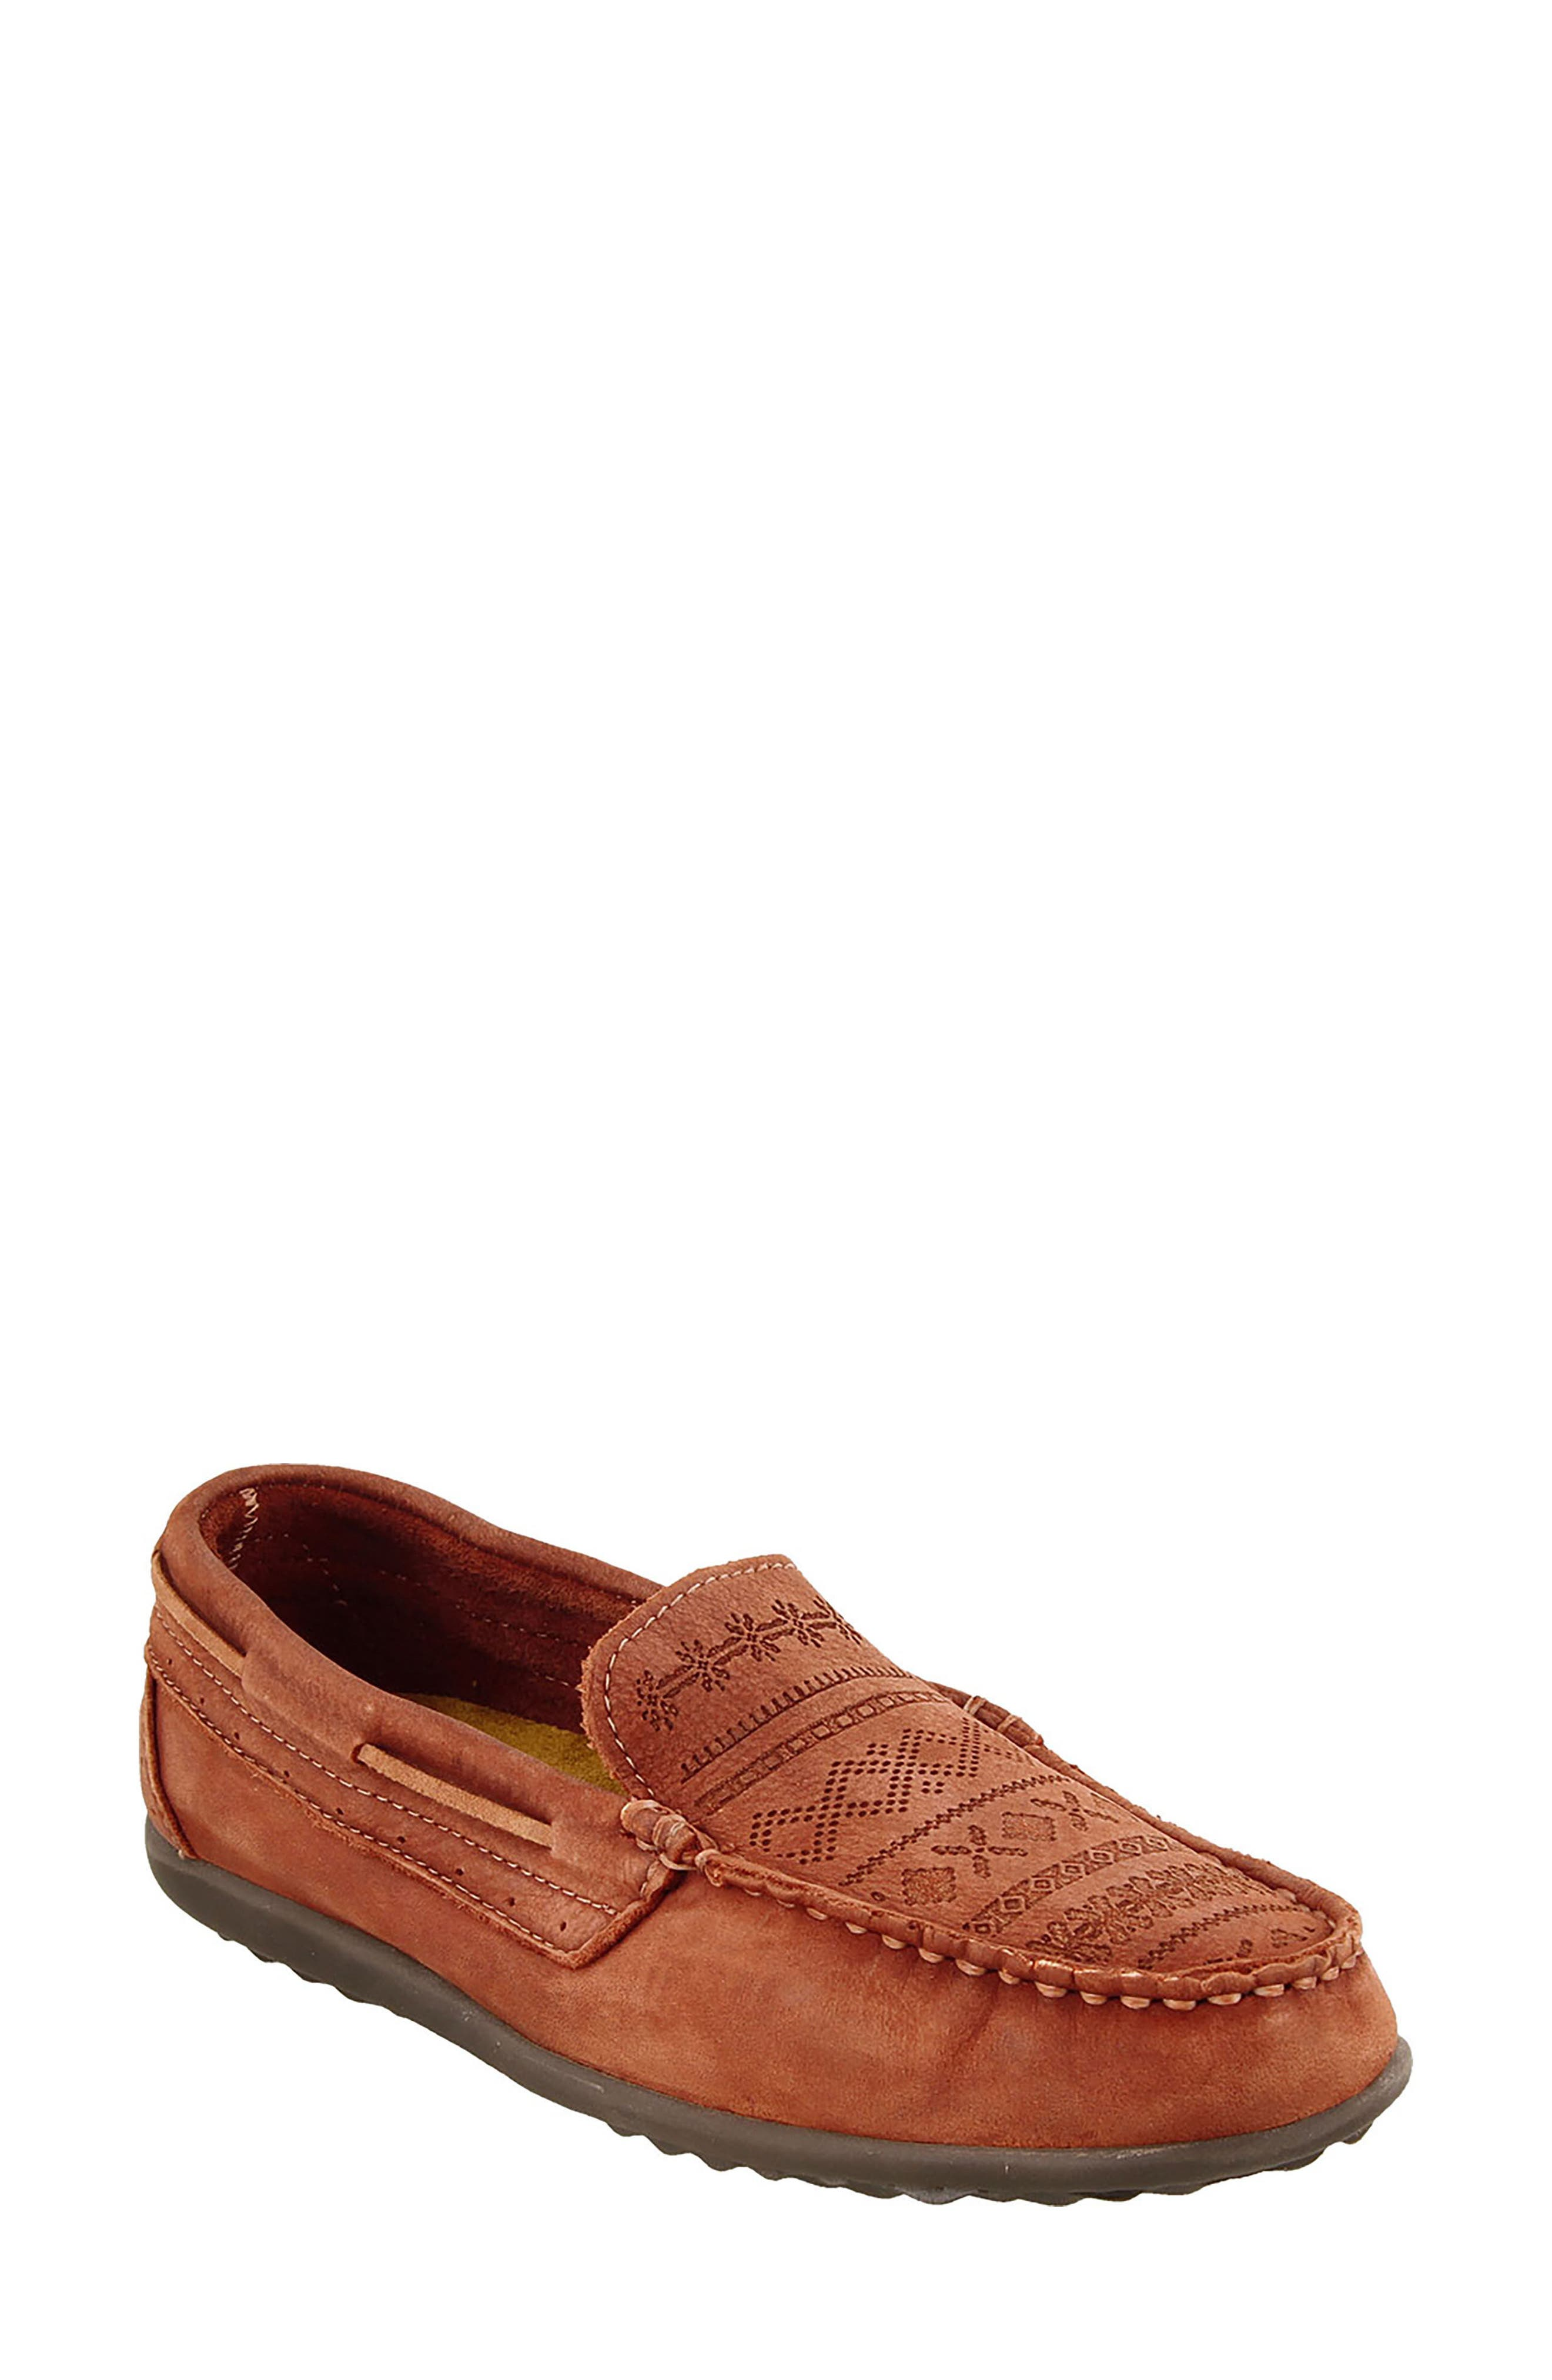 Heritage Moccasin Flat,                             Main thumbnail 1, color,                             Spice Red Leather